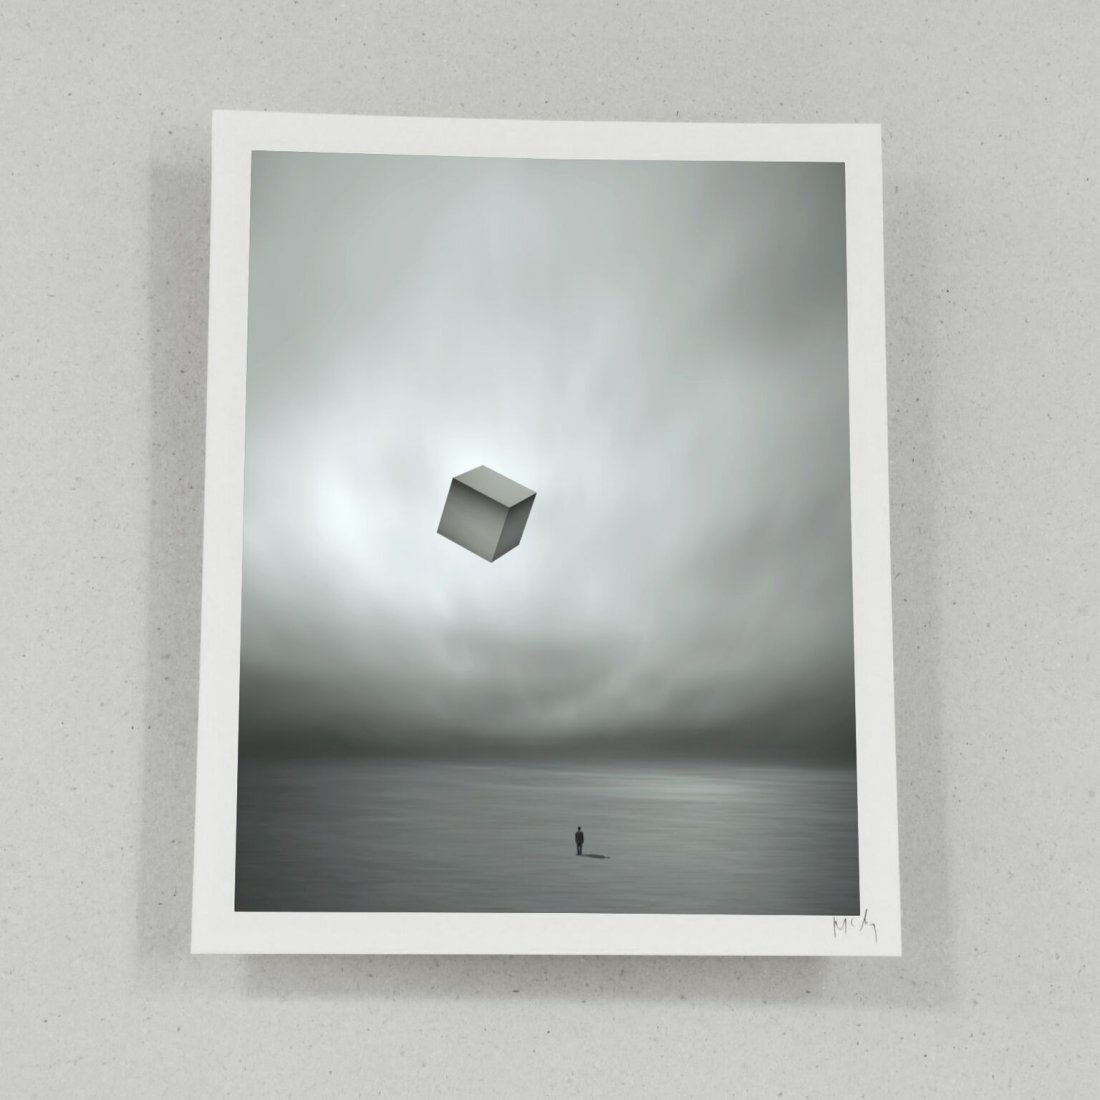 Philip Mckay - Airborne Folio - Six Prints - 7